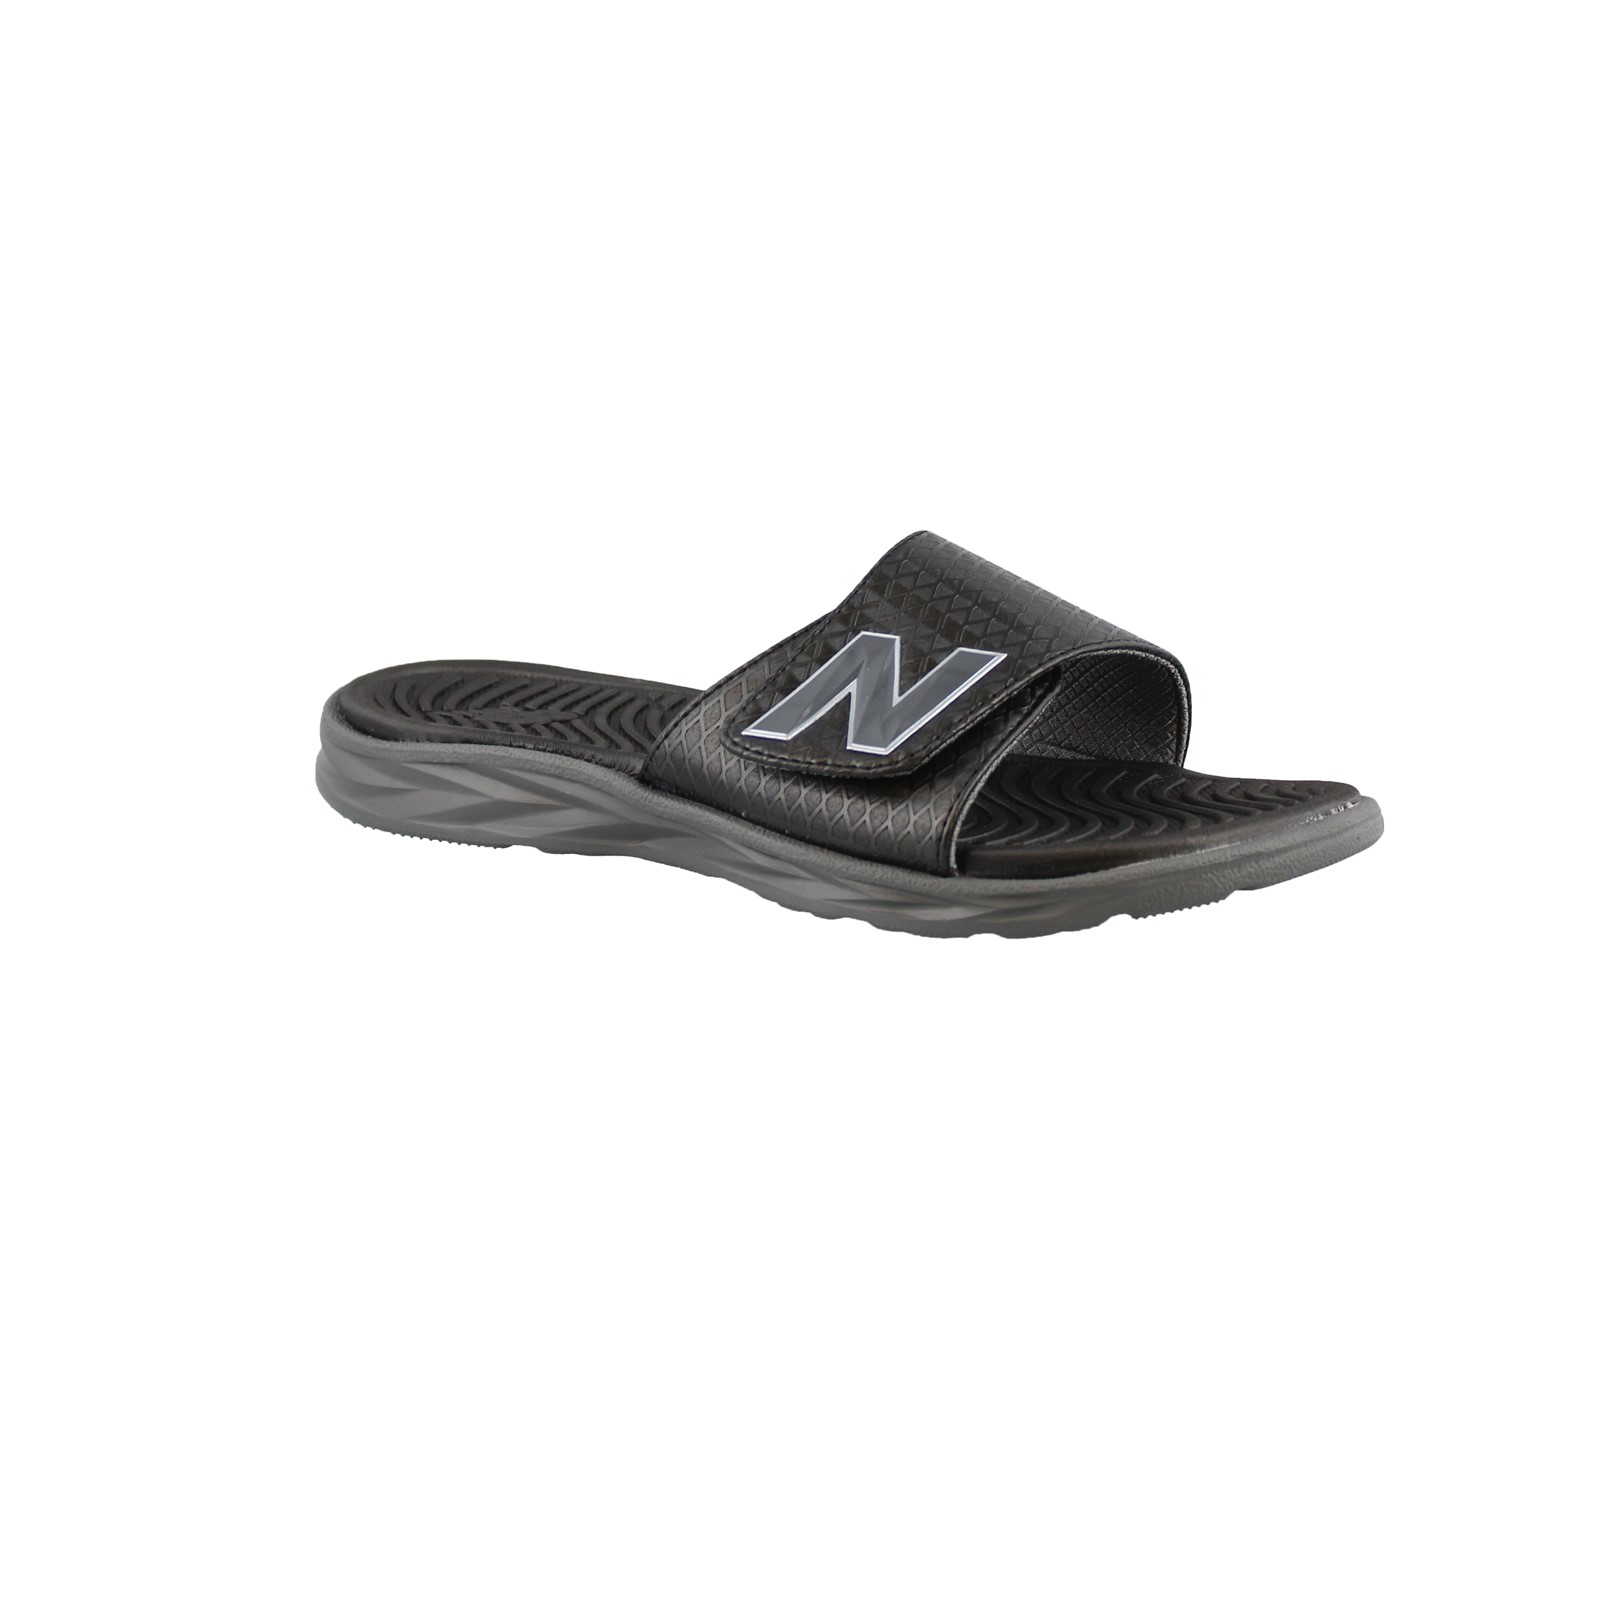 0e9e79eb7c7bd Next. add to favorites. Men's New Balance, Response Slide Sandals